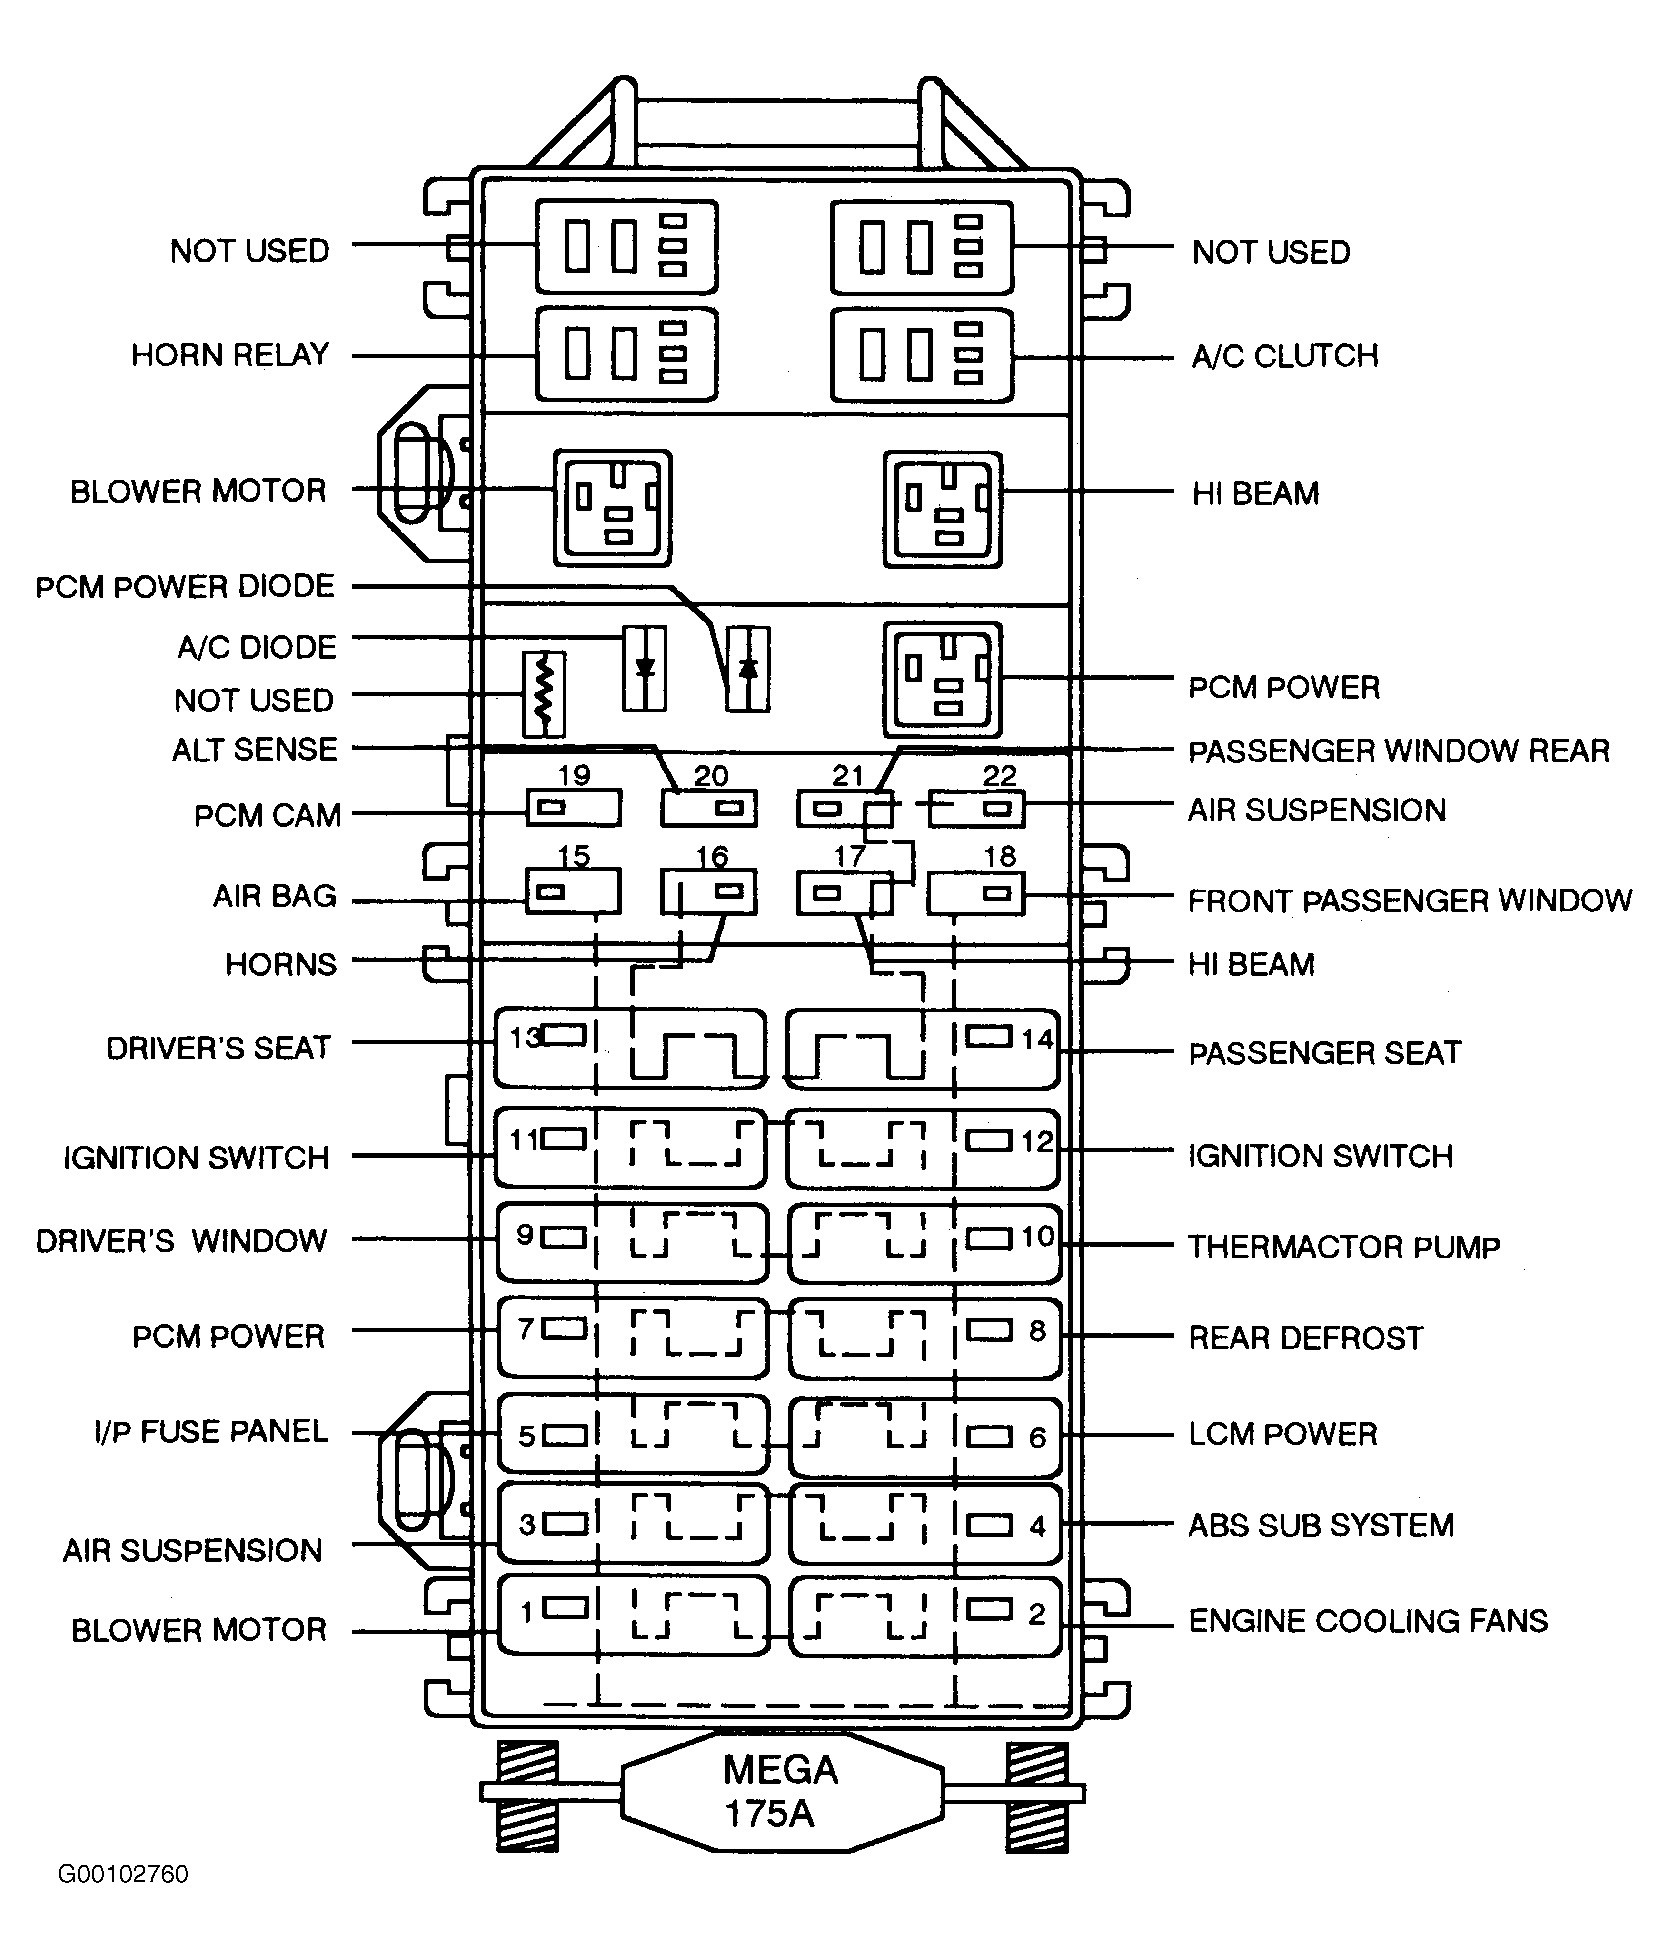 1996 Lincoln Town Car Fuse Box Diagram • Wiring Diagram